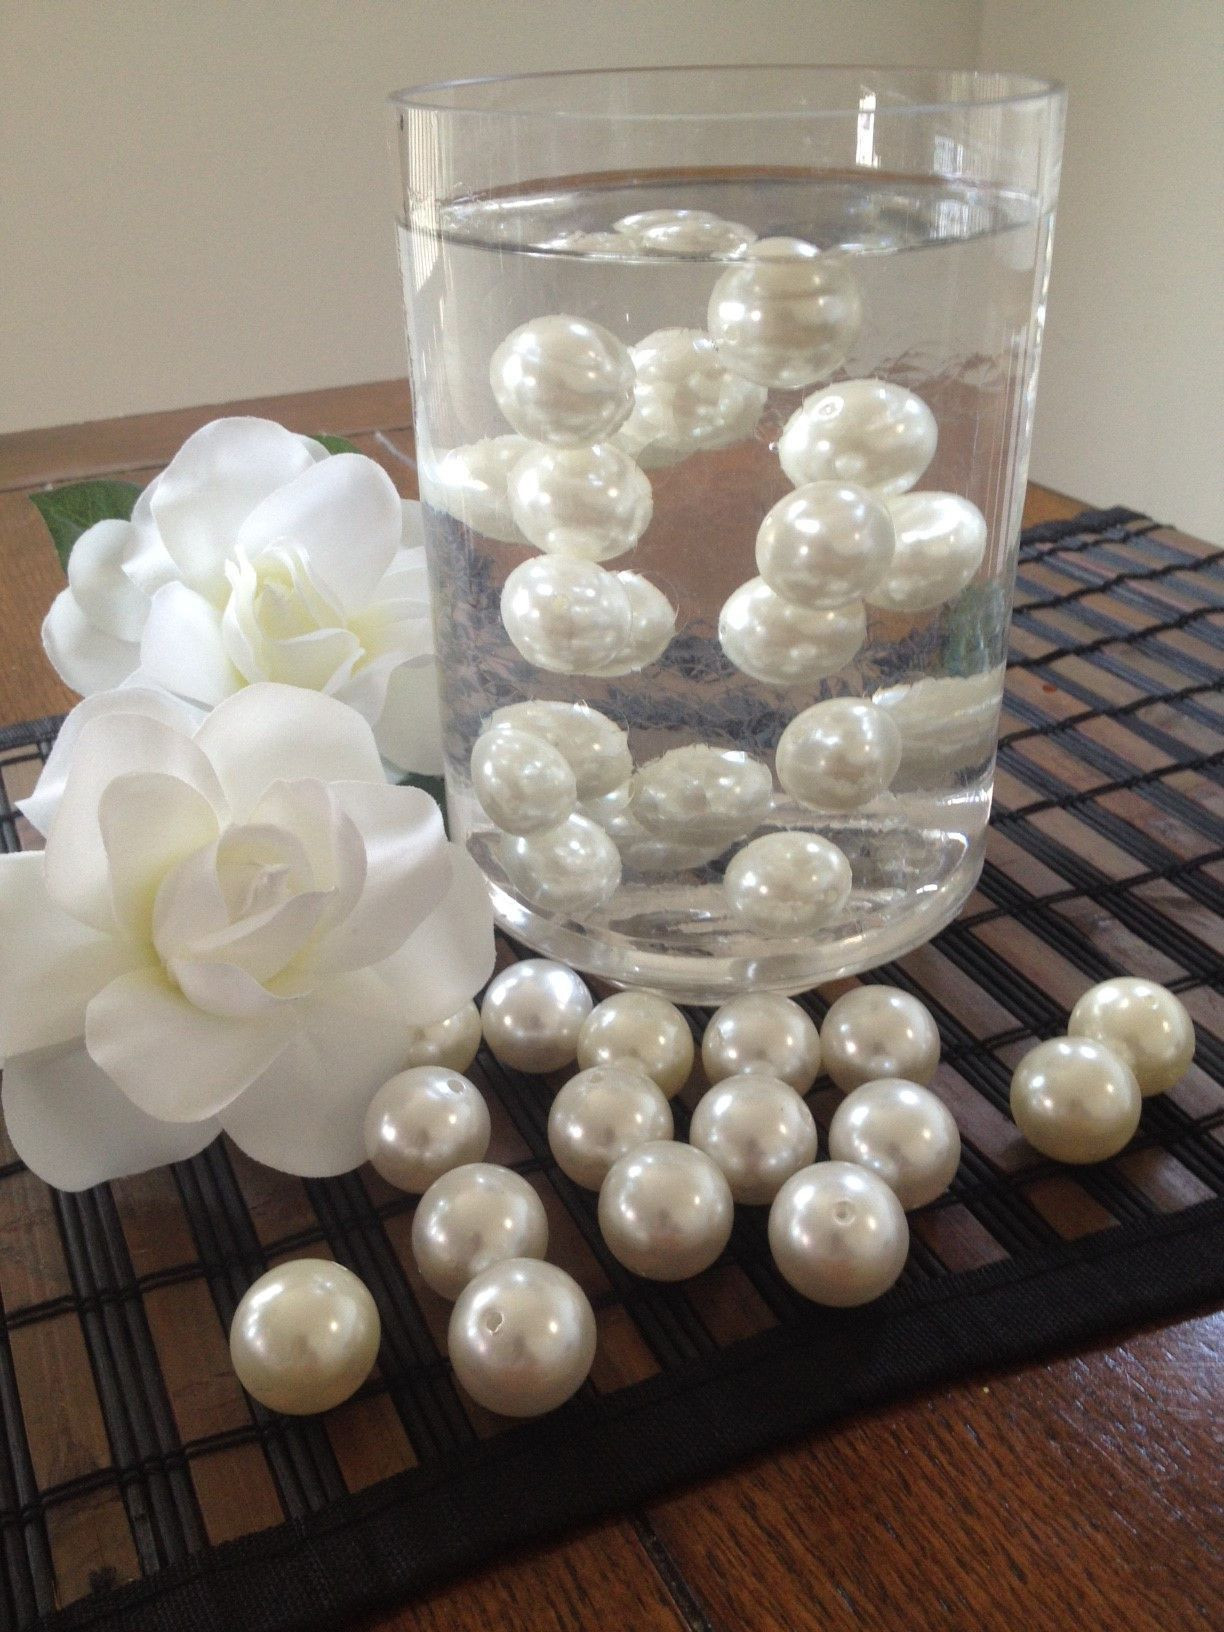 13 Stunning Jumbo Pearl Vase Fillers 2021 free download jumbo pearl vase fillers of 20pc jumbo pearl 24mm for floating pearl centerpiece vase fillers for 20 pieces of jumbo size 24mm pearls for used in floating pearl centerpiece as shown inside